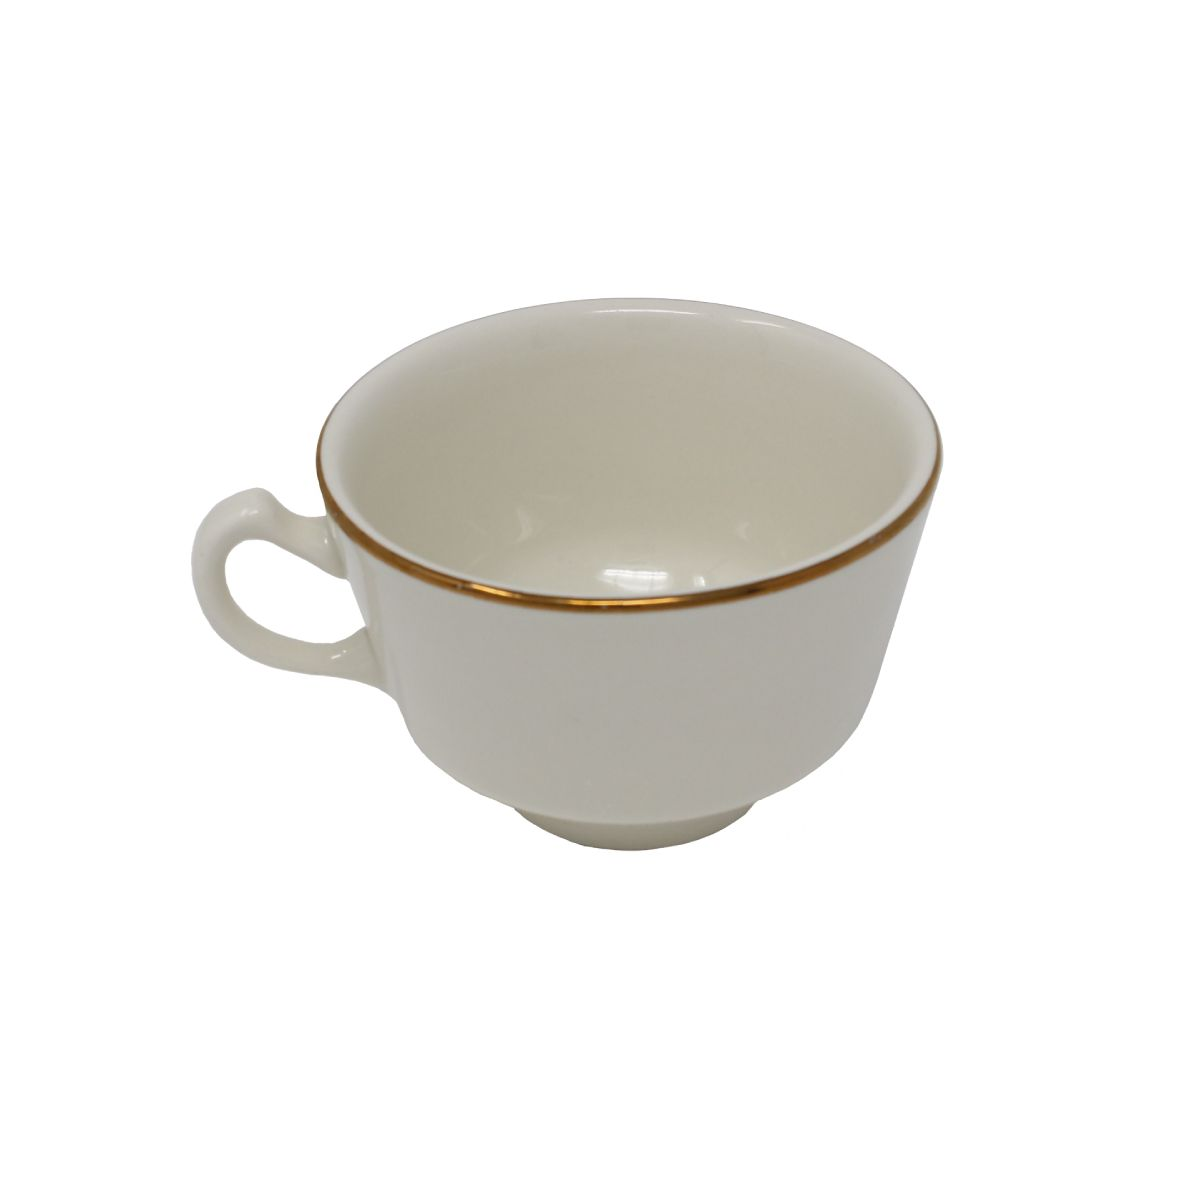 Coffee Cup Beige With Gold Band 7.75 Oz